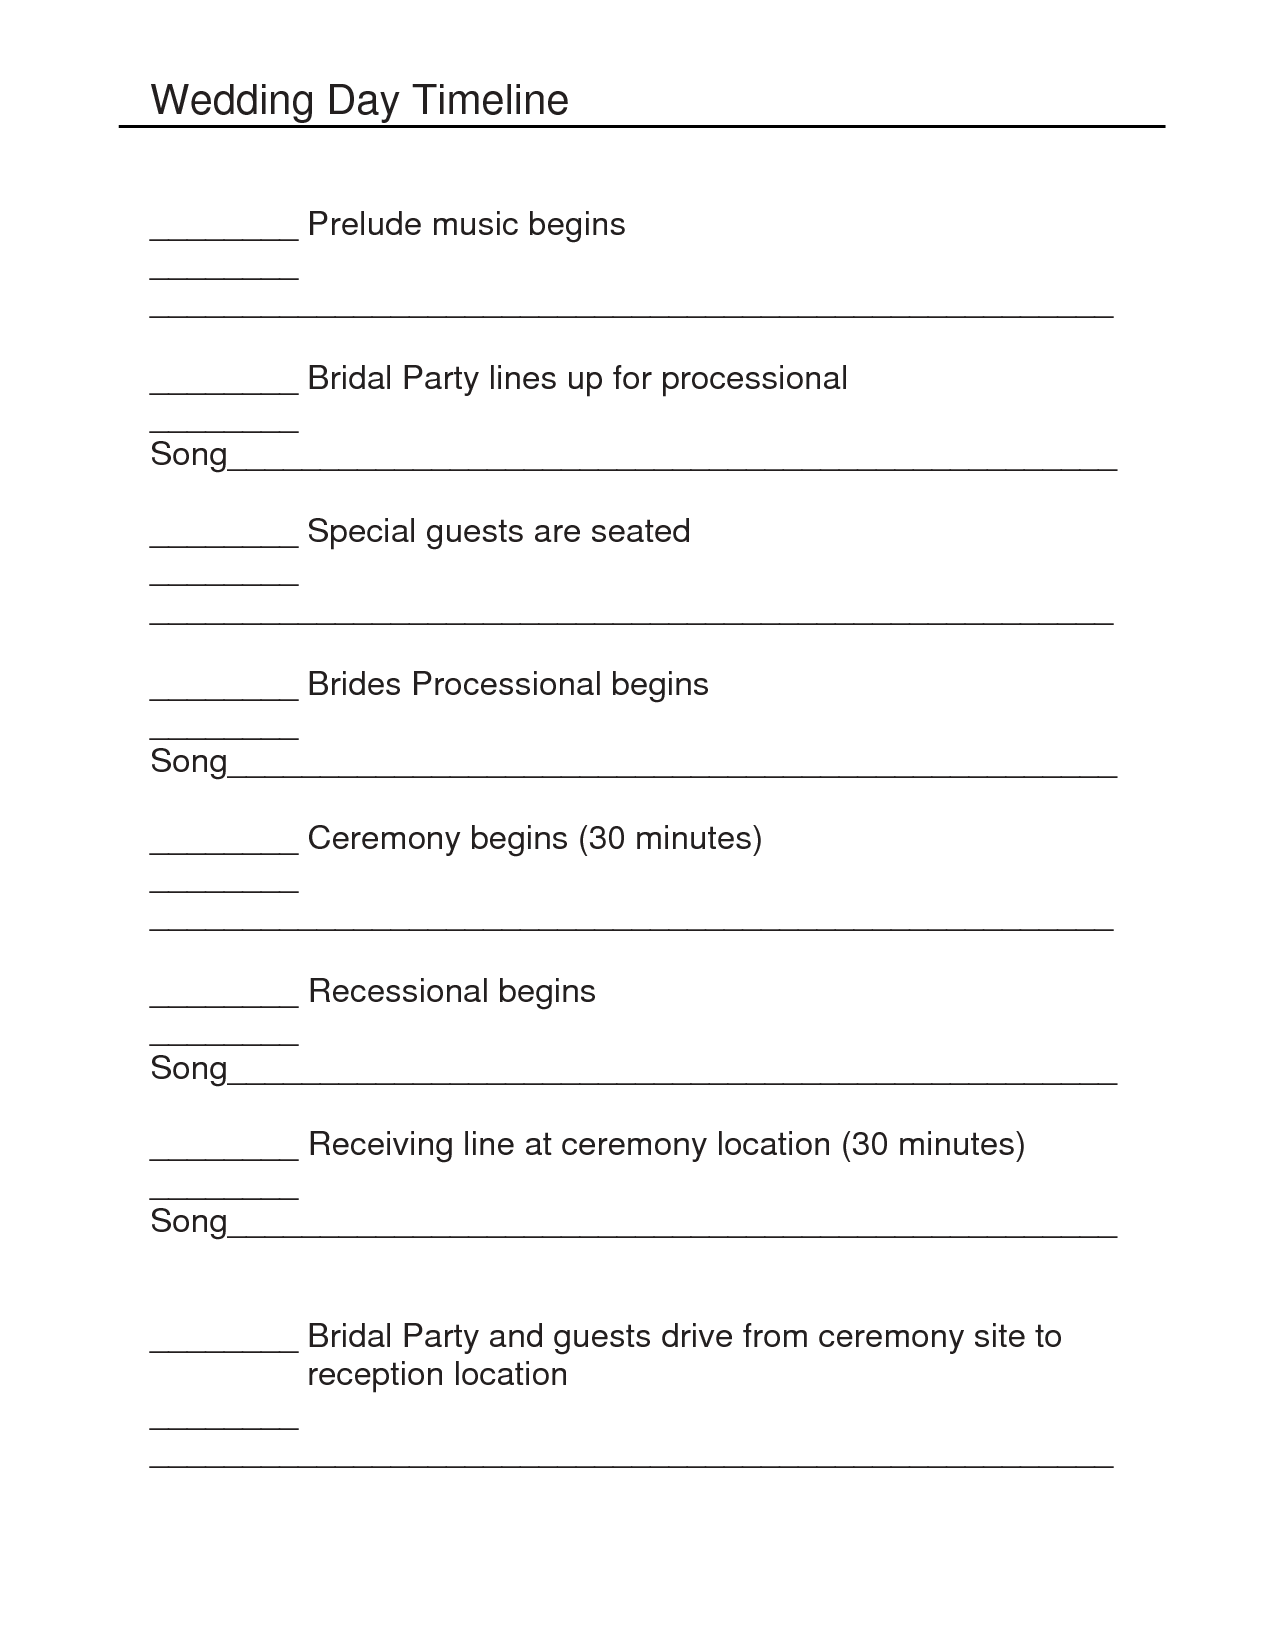 Outline For Formal Wedding Itinerary